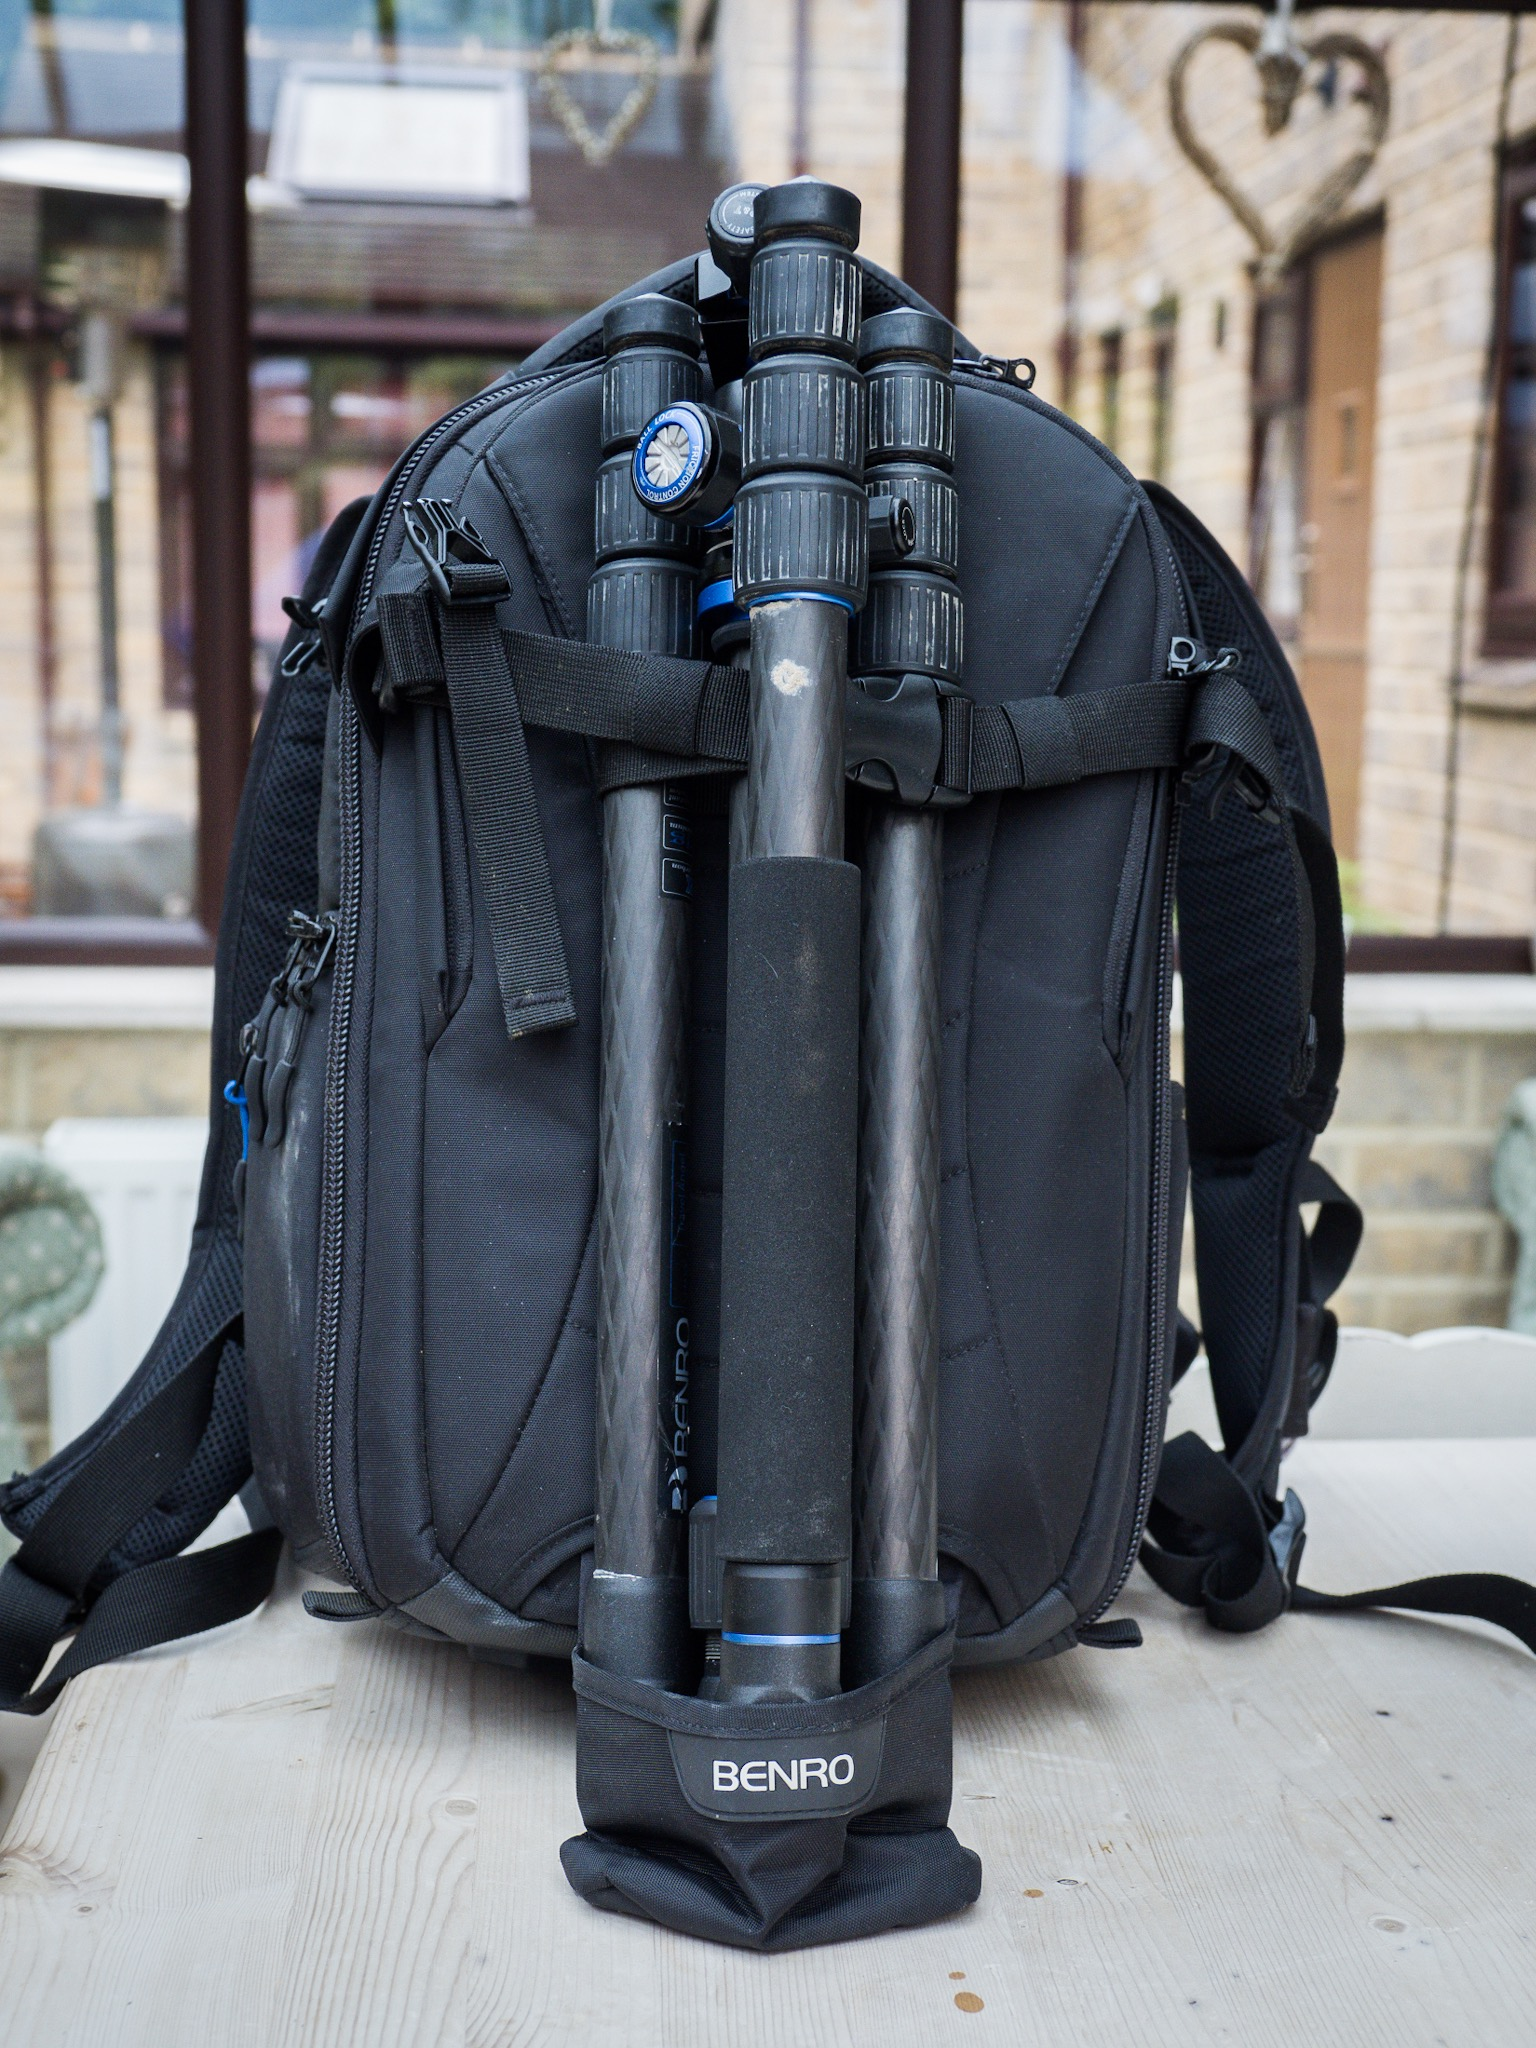 Benro Ranger 200 with tripod